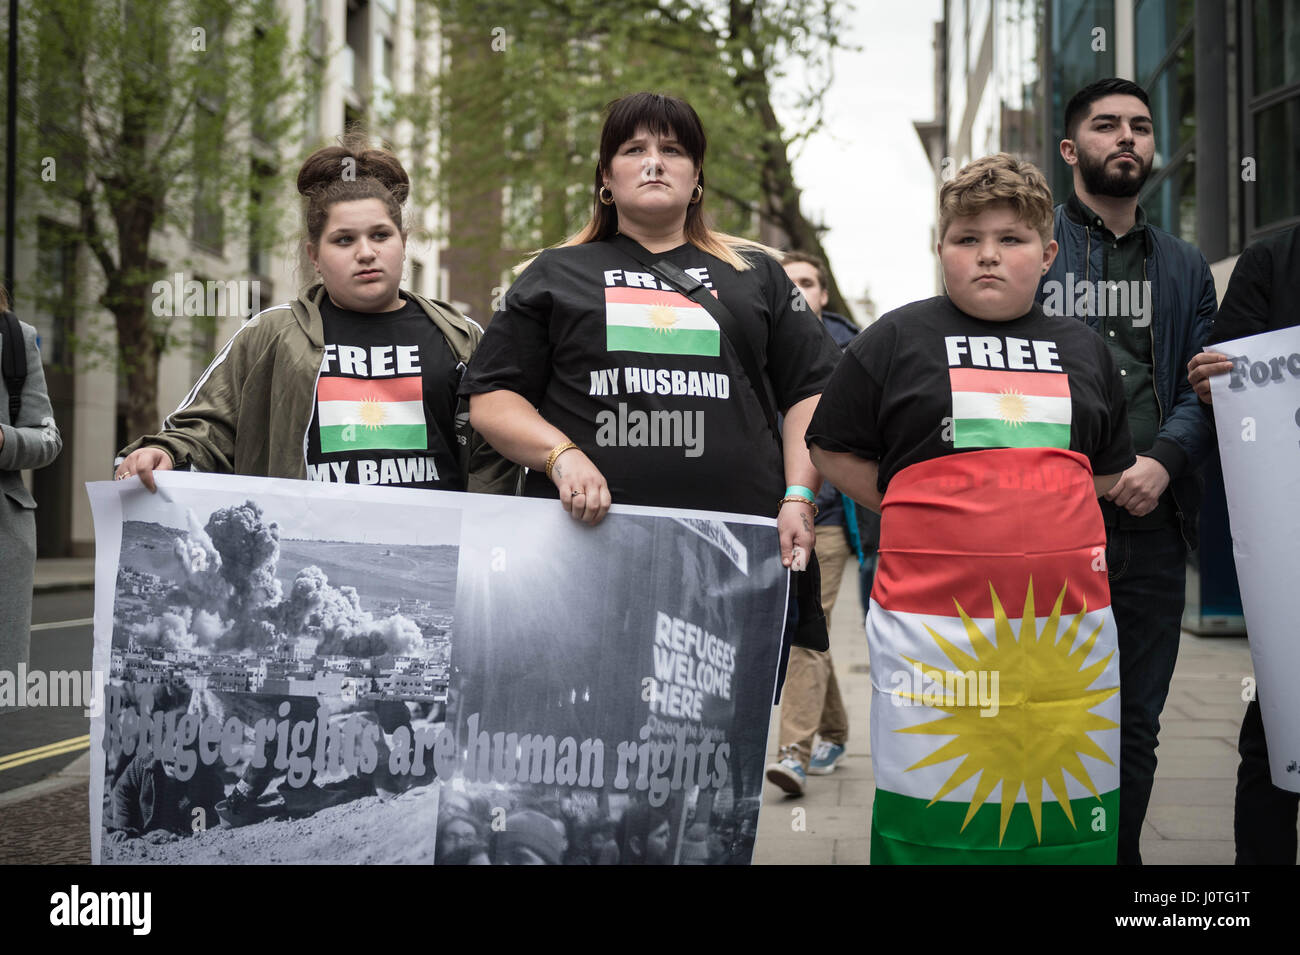 London, UK. 13th April, 2017. Members of the UK's Iraqi community and supporters attend an emergency demonstration - Stock Image